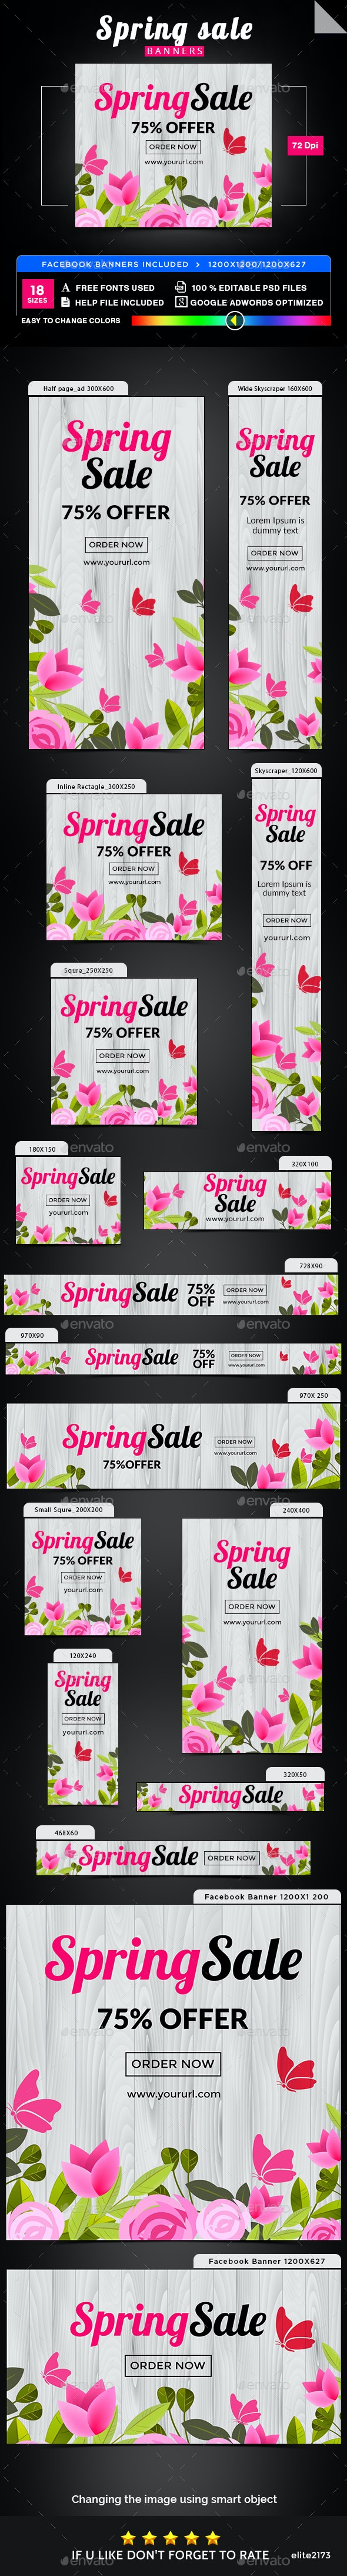 Spring Sale Banners - Image Included - Banners & Ads Web Elements